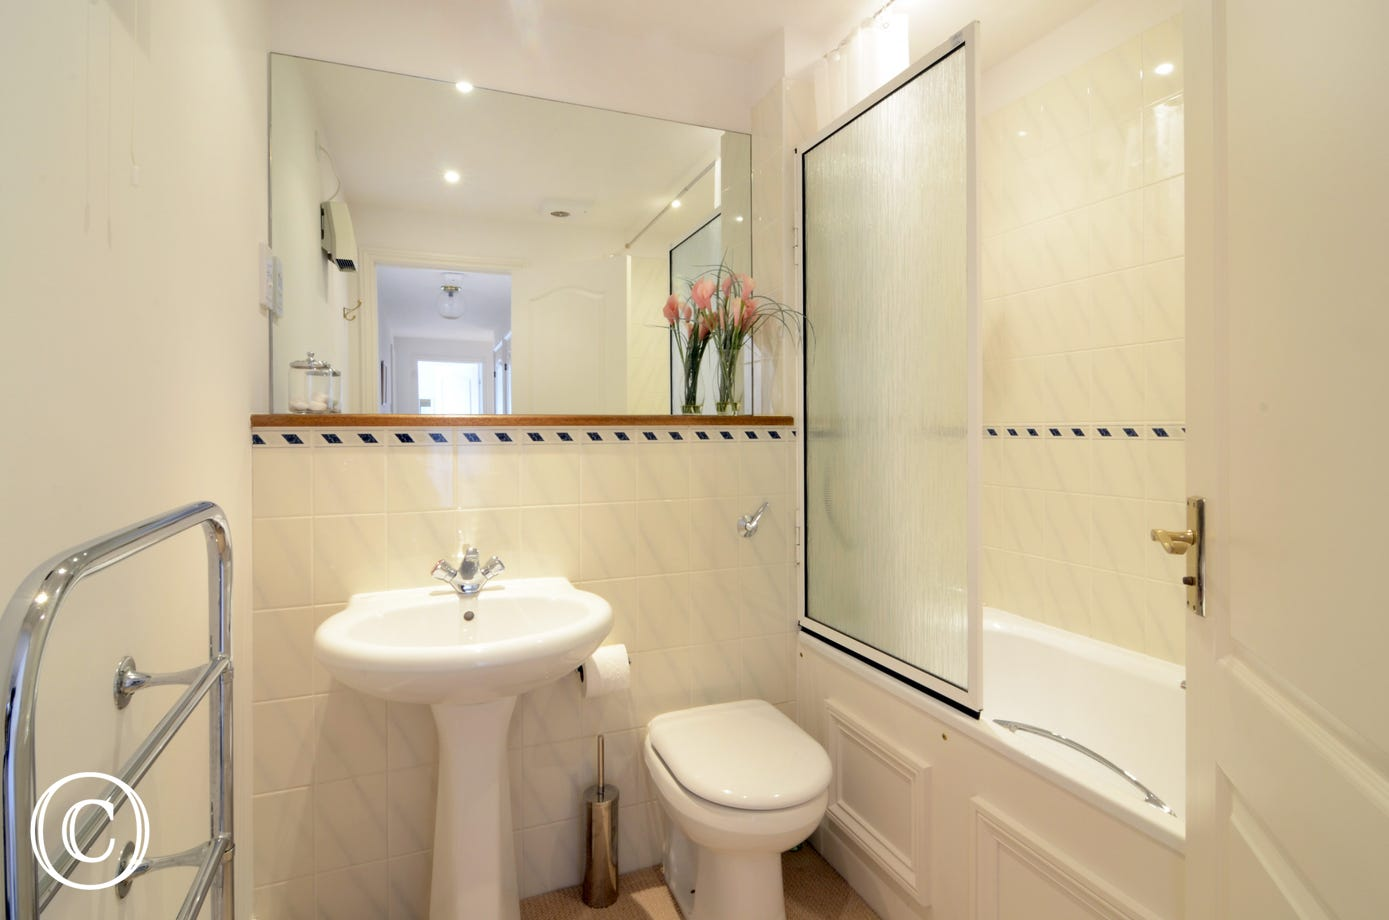 Family bathroom with bath tub, shower over bath, wash basin and toilet, as well as heated towel rail